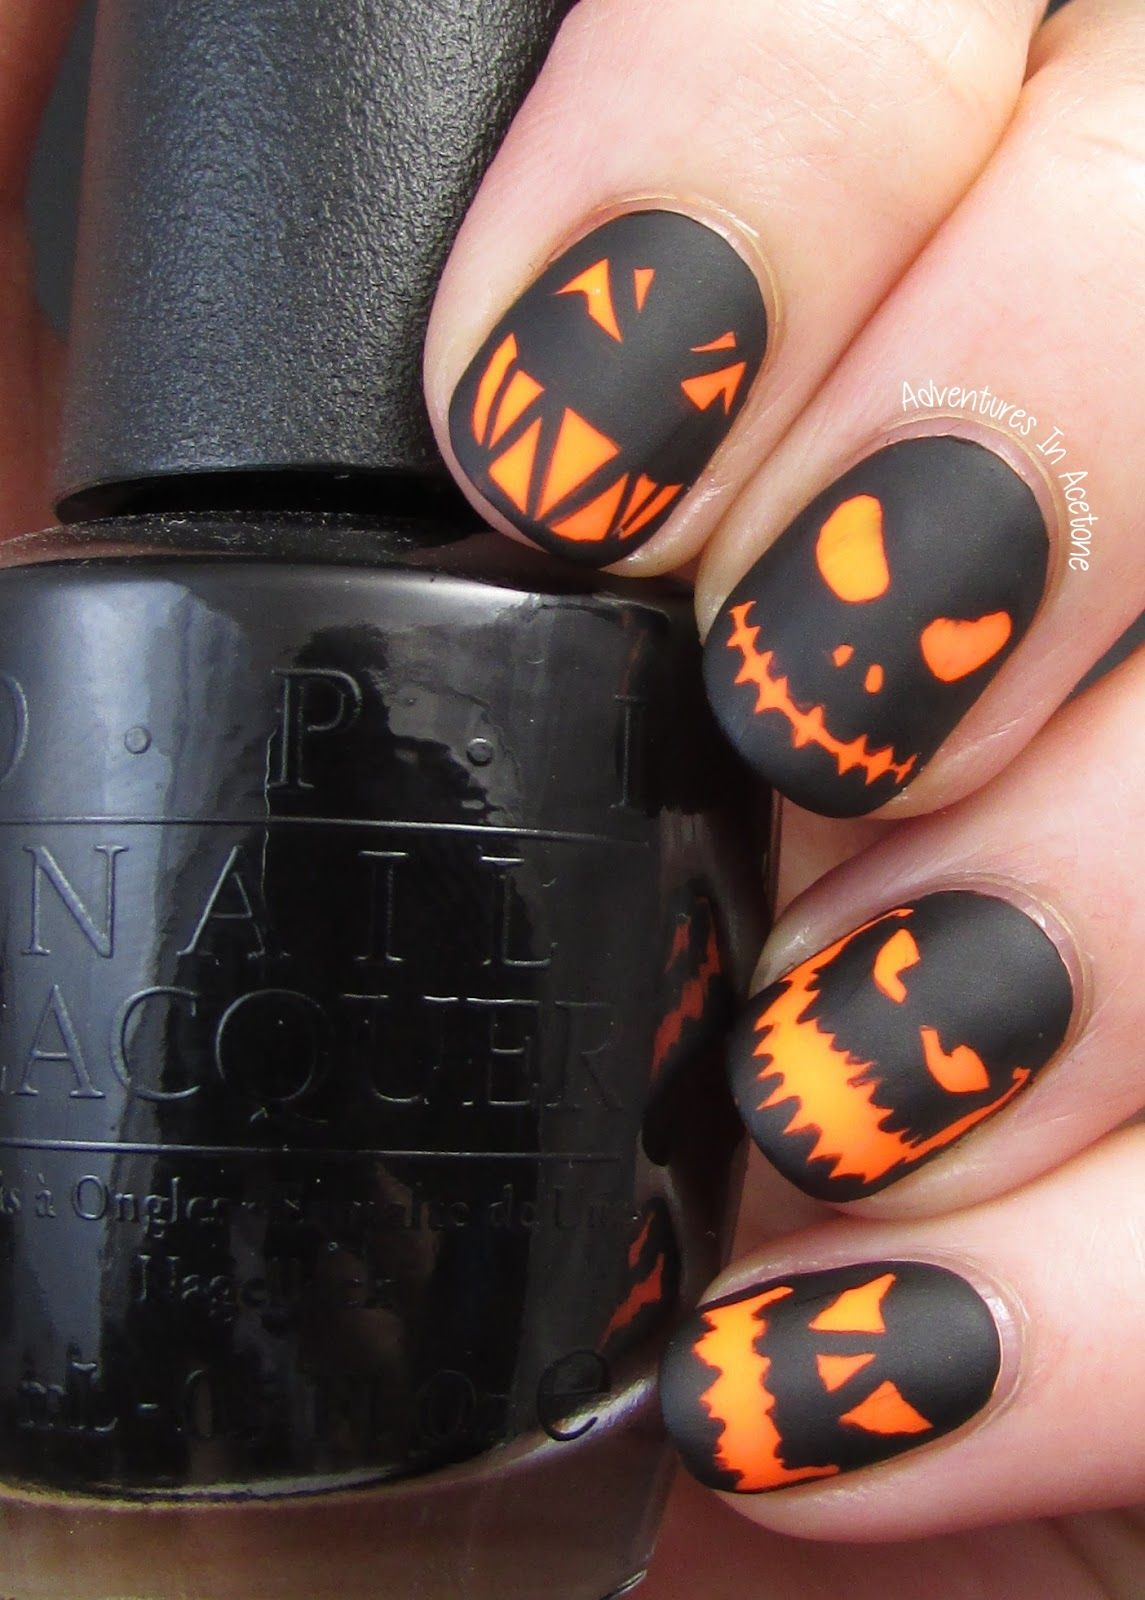 Adventures In Acetone The Digit Al Dozen Does Spooky Days Day 1 Glowing Jack O Lanterns Llafterdark Halloween Nail Designs Fall Nail Art Nails